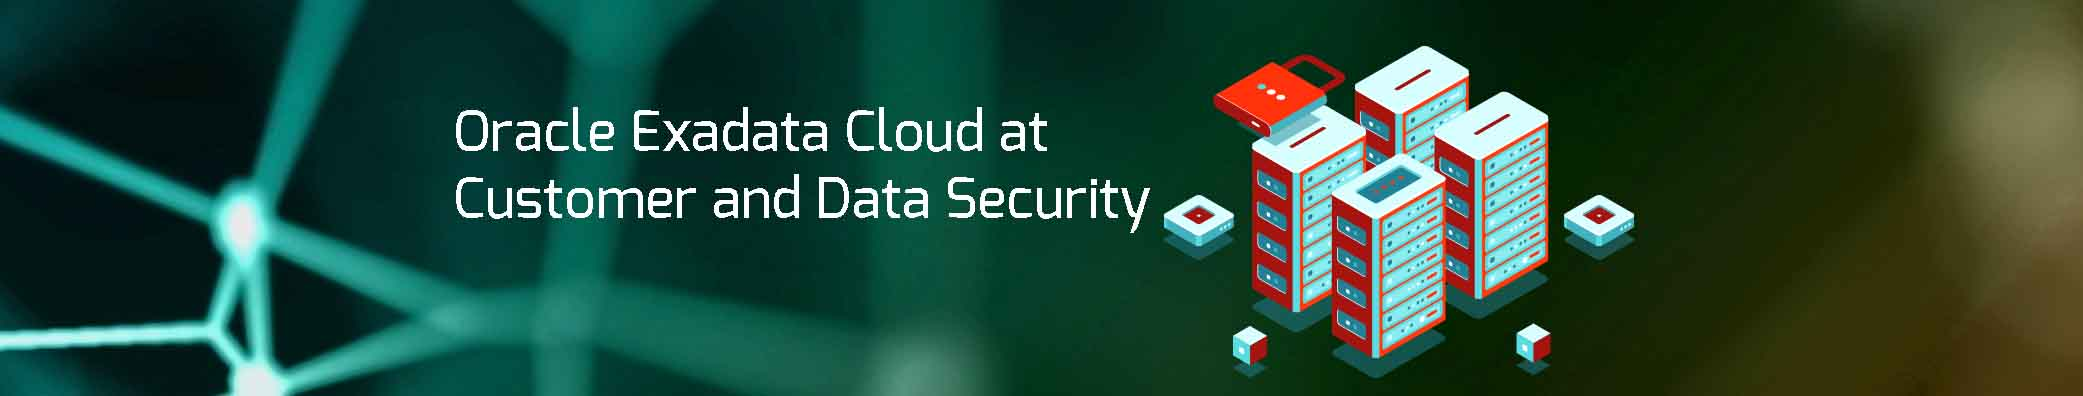 Oracle Exadata Cloud at Customer and Data Security